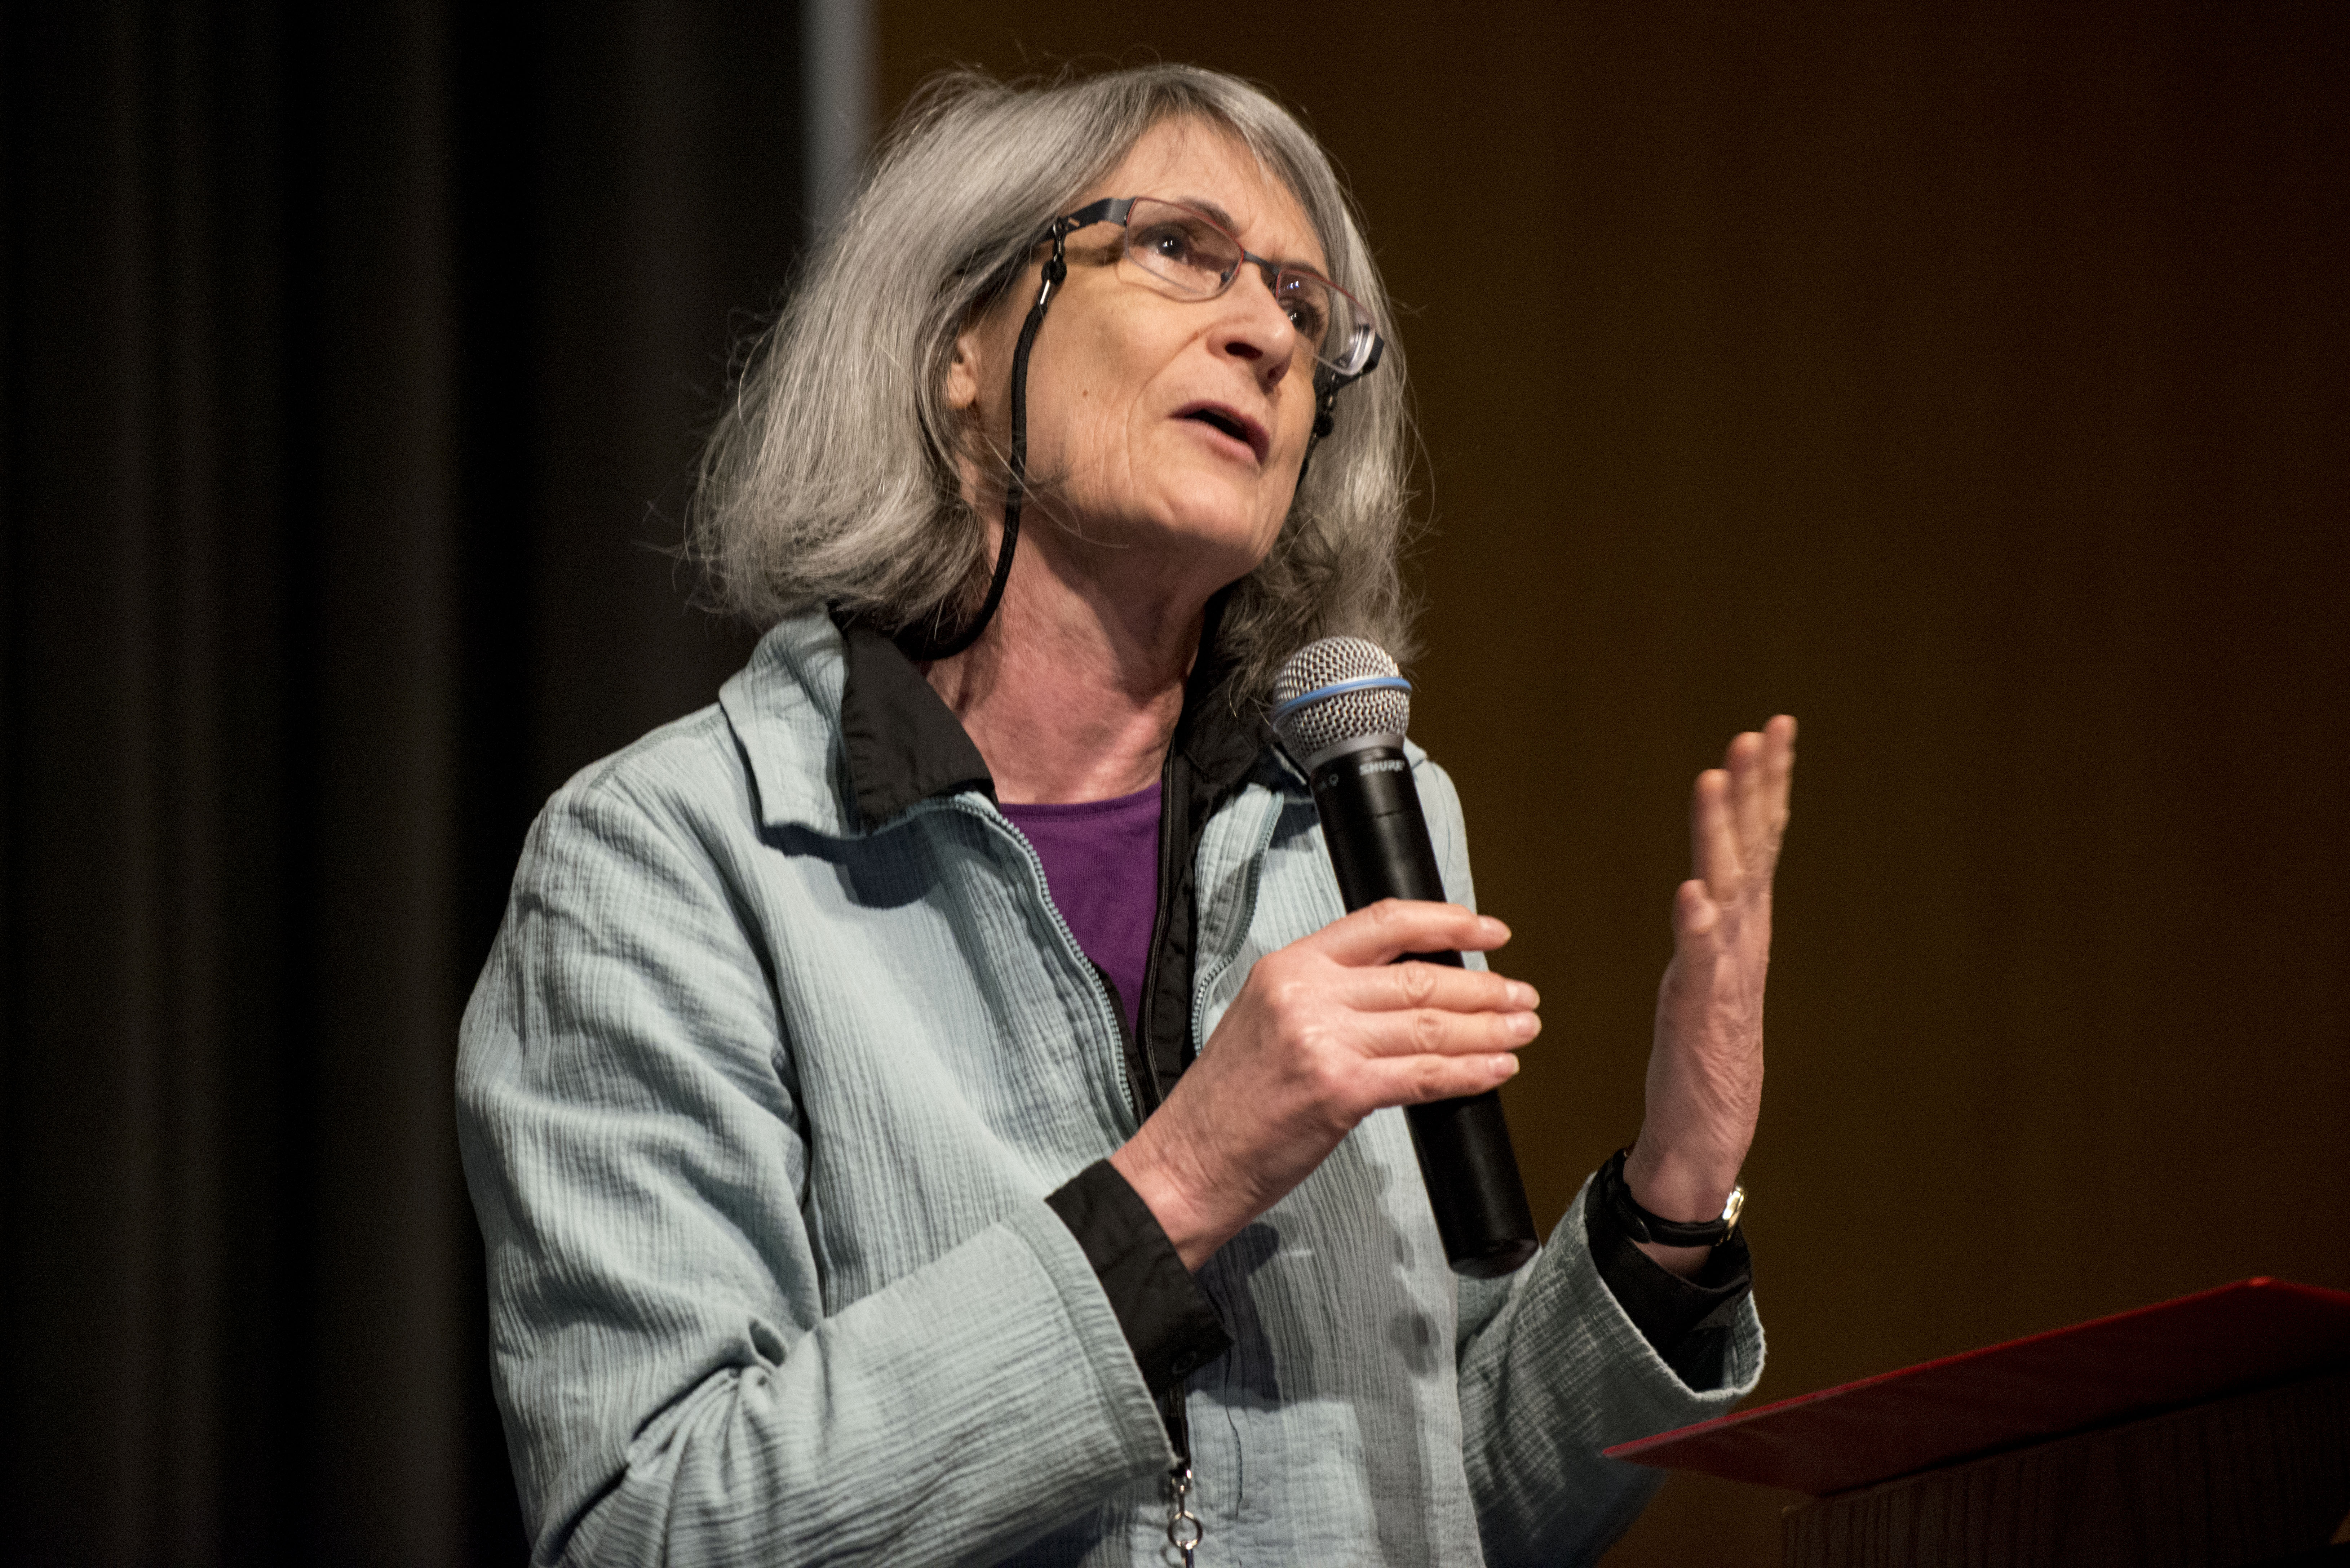 Jane Singer, professor at City University London, speaks at the 2014 ISOJ on the UT-Austin campus. (Lauren Schneider/Knight Center)